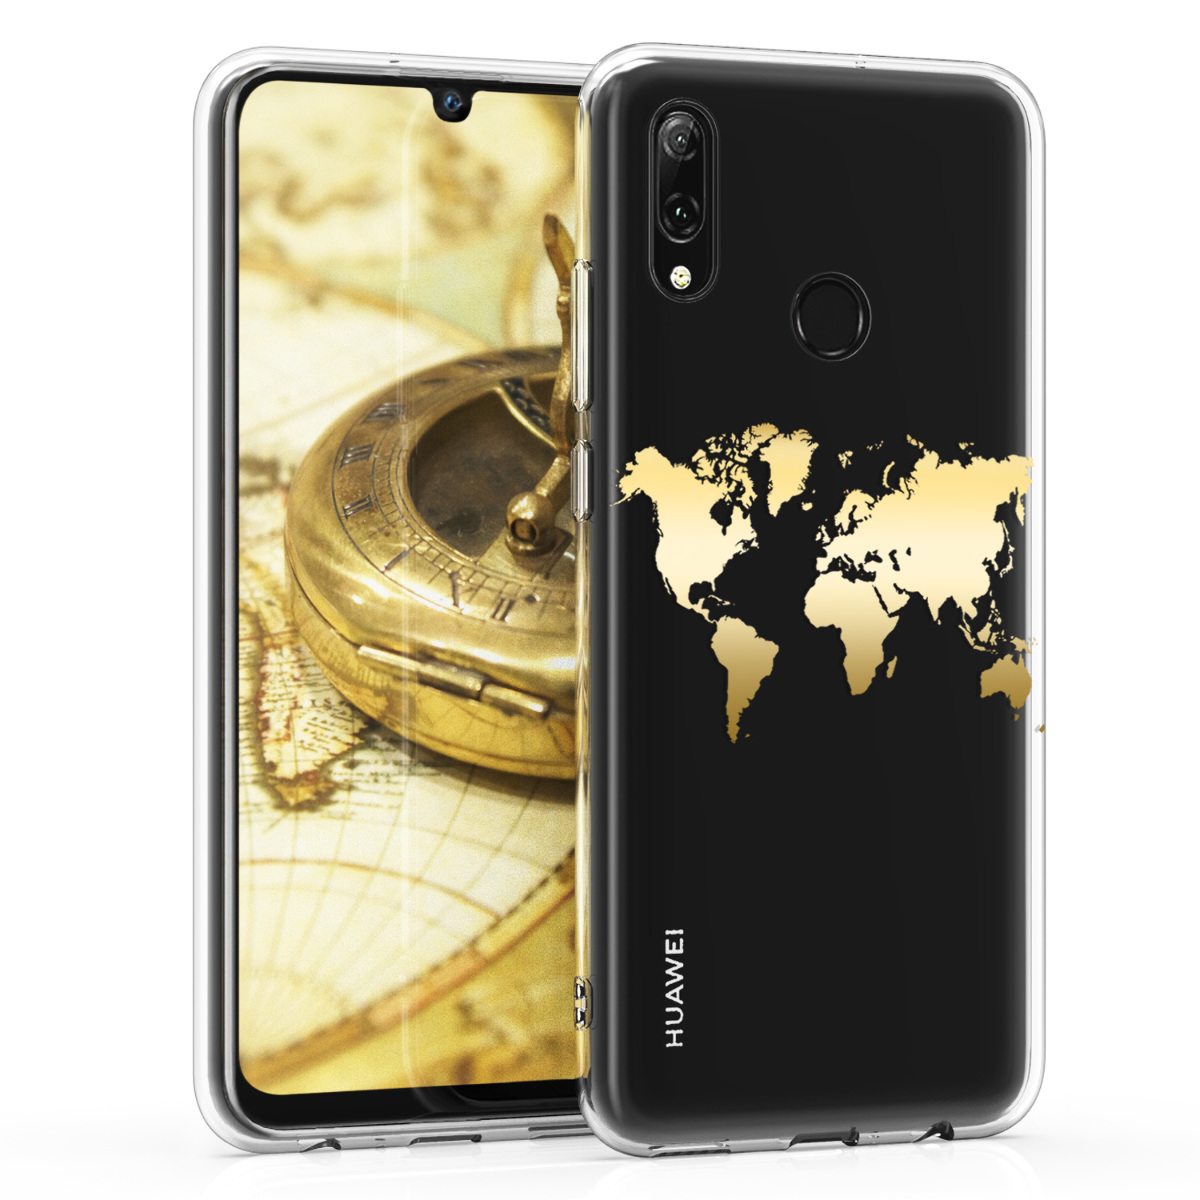 KW Θήκη Σιλικόνης Huawei P Smart (2019) - Gold / Transparent (47389.01)